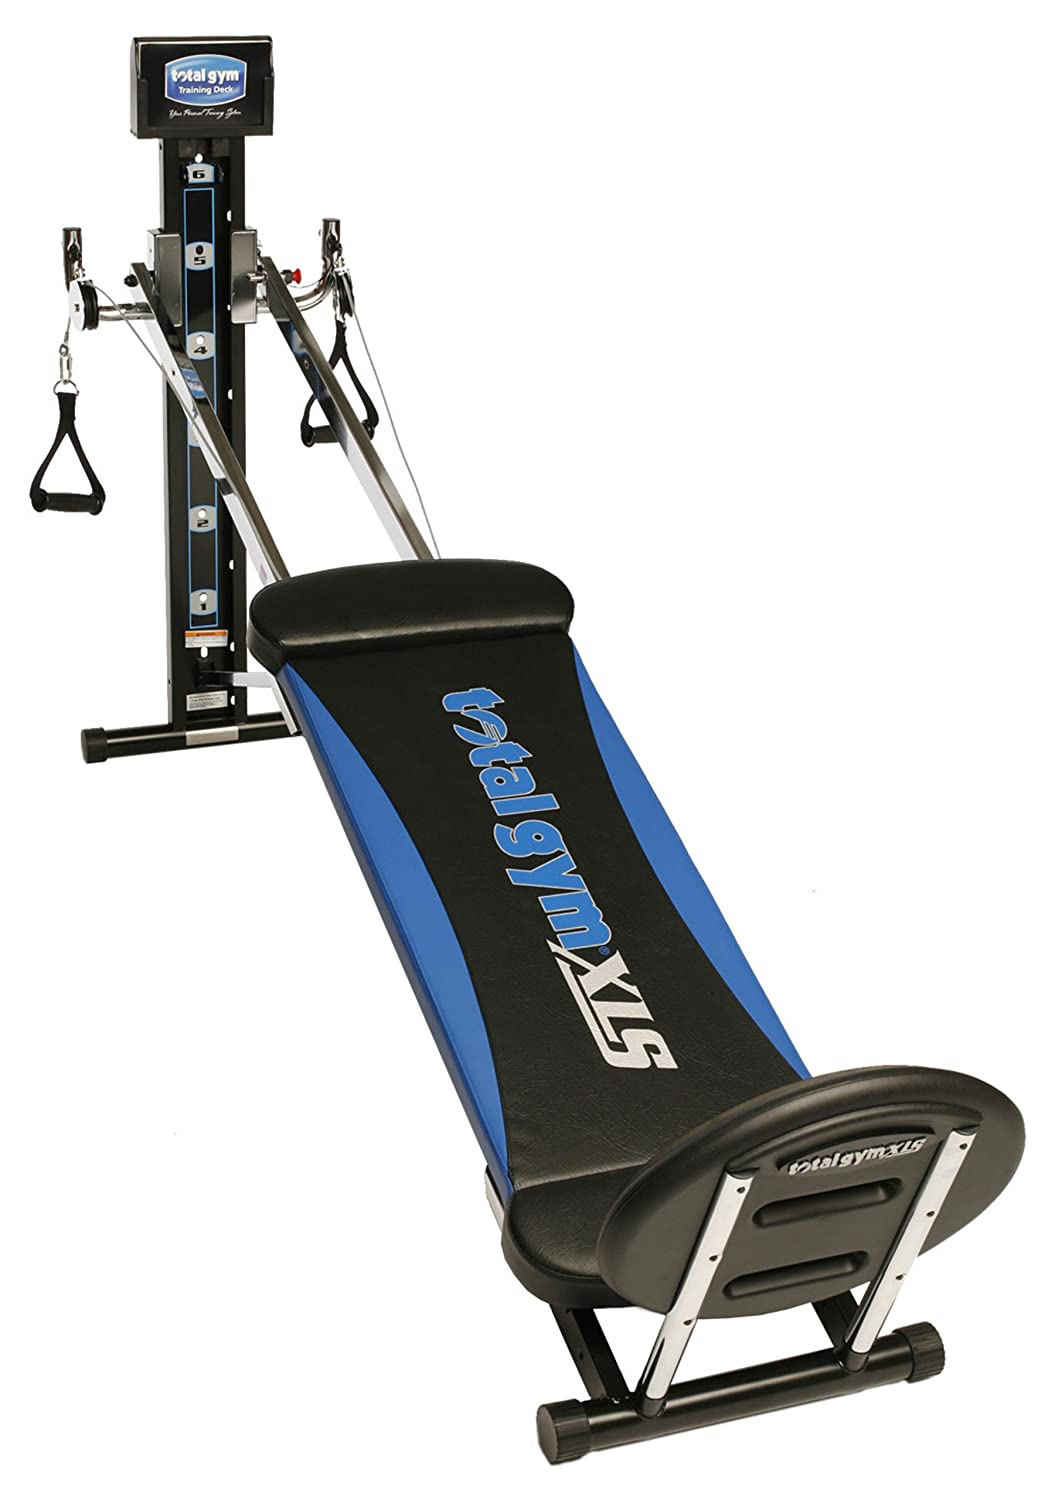 Total Gym XLS Trainer $544.99